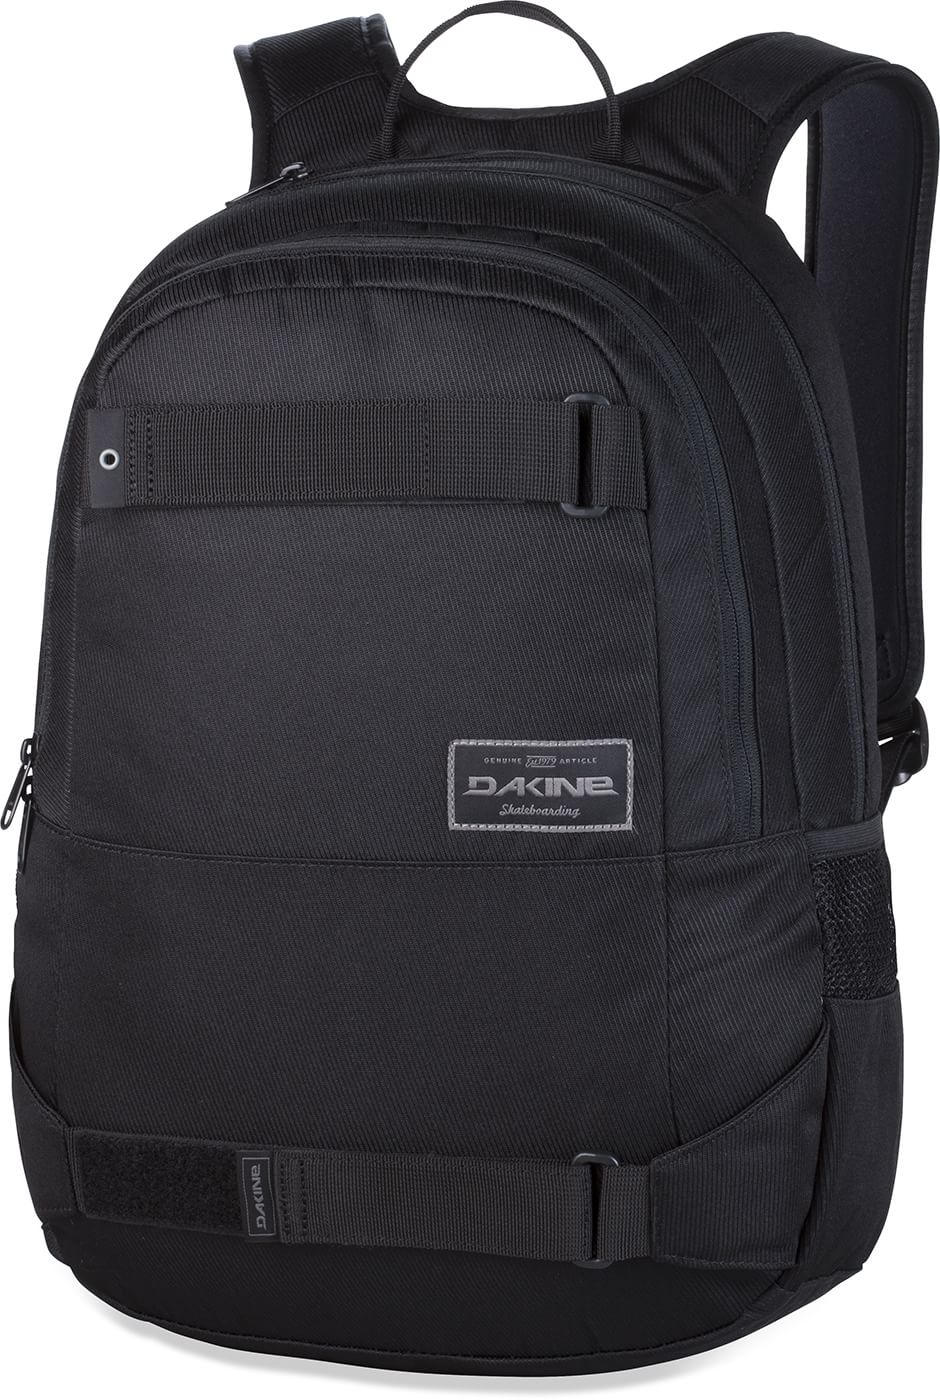 Dakine Skate Backpacks aVSiCTia